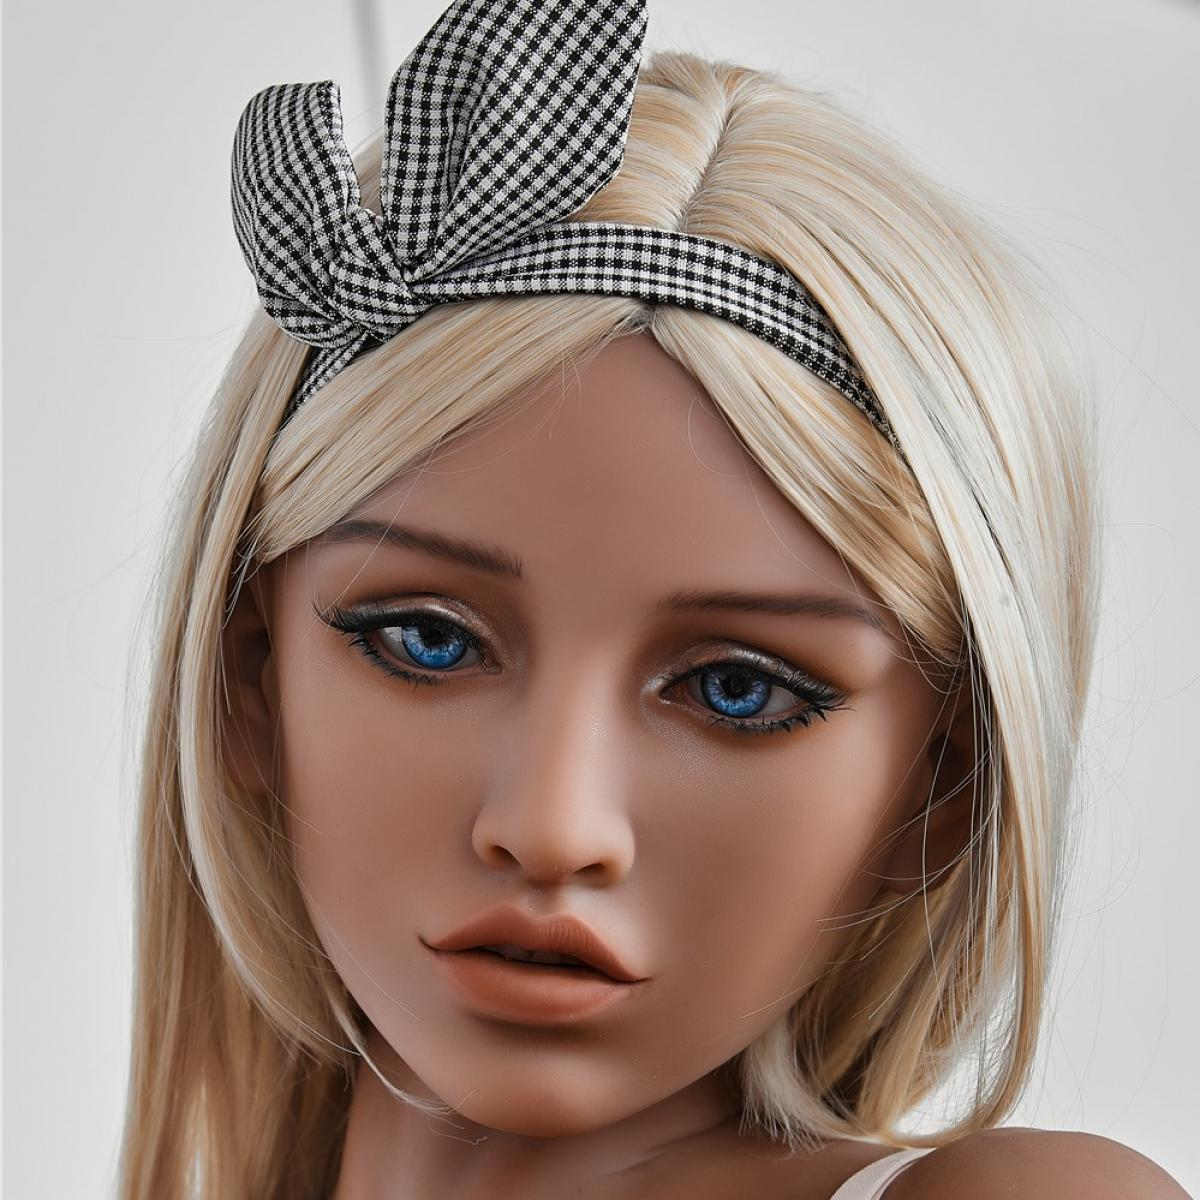 Neodoll Racy Victoria Head - Sex Doll Head - M16 Compatible - Tan